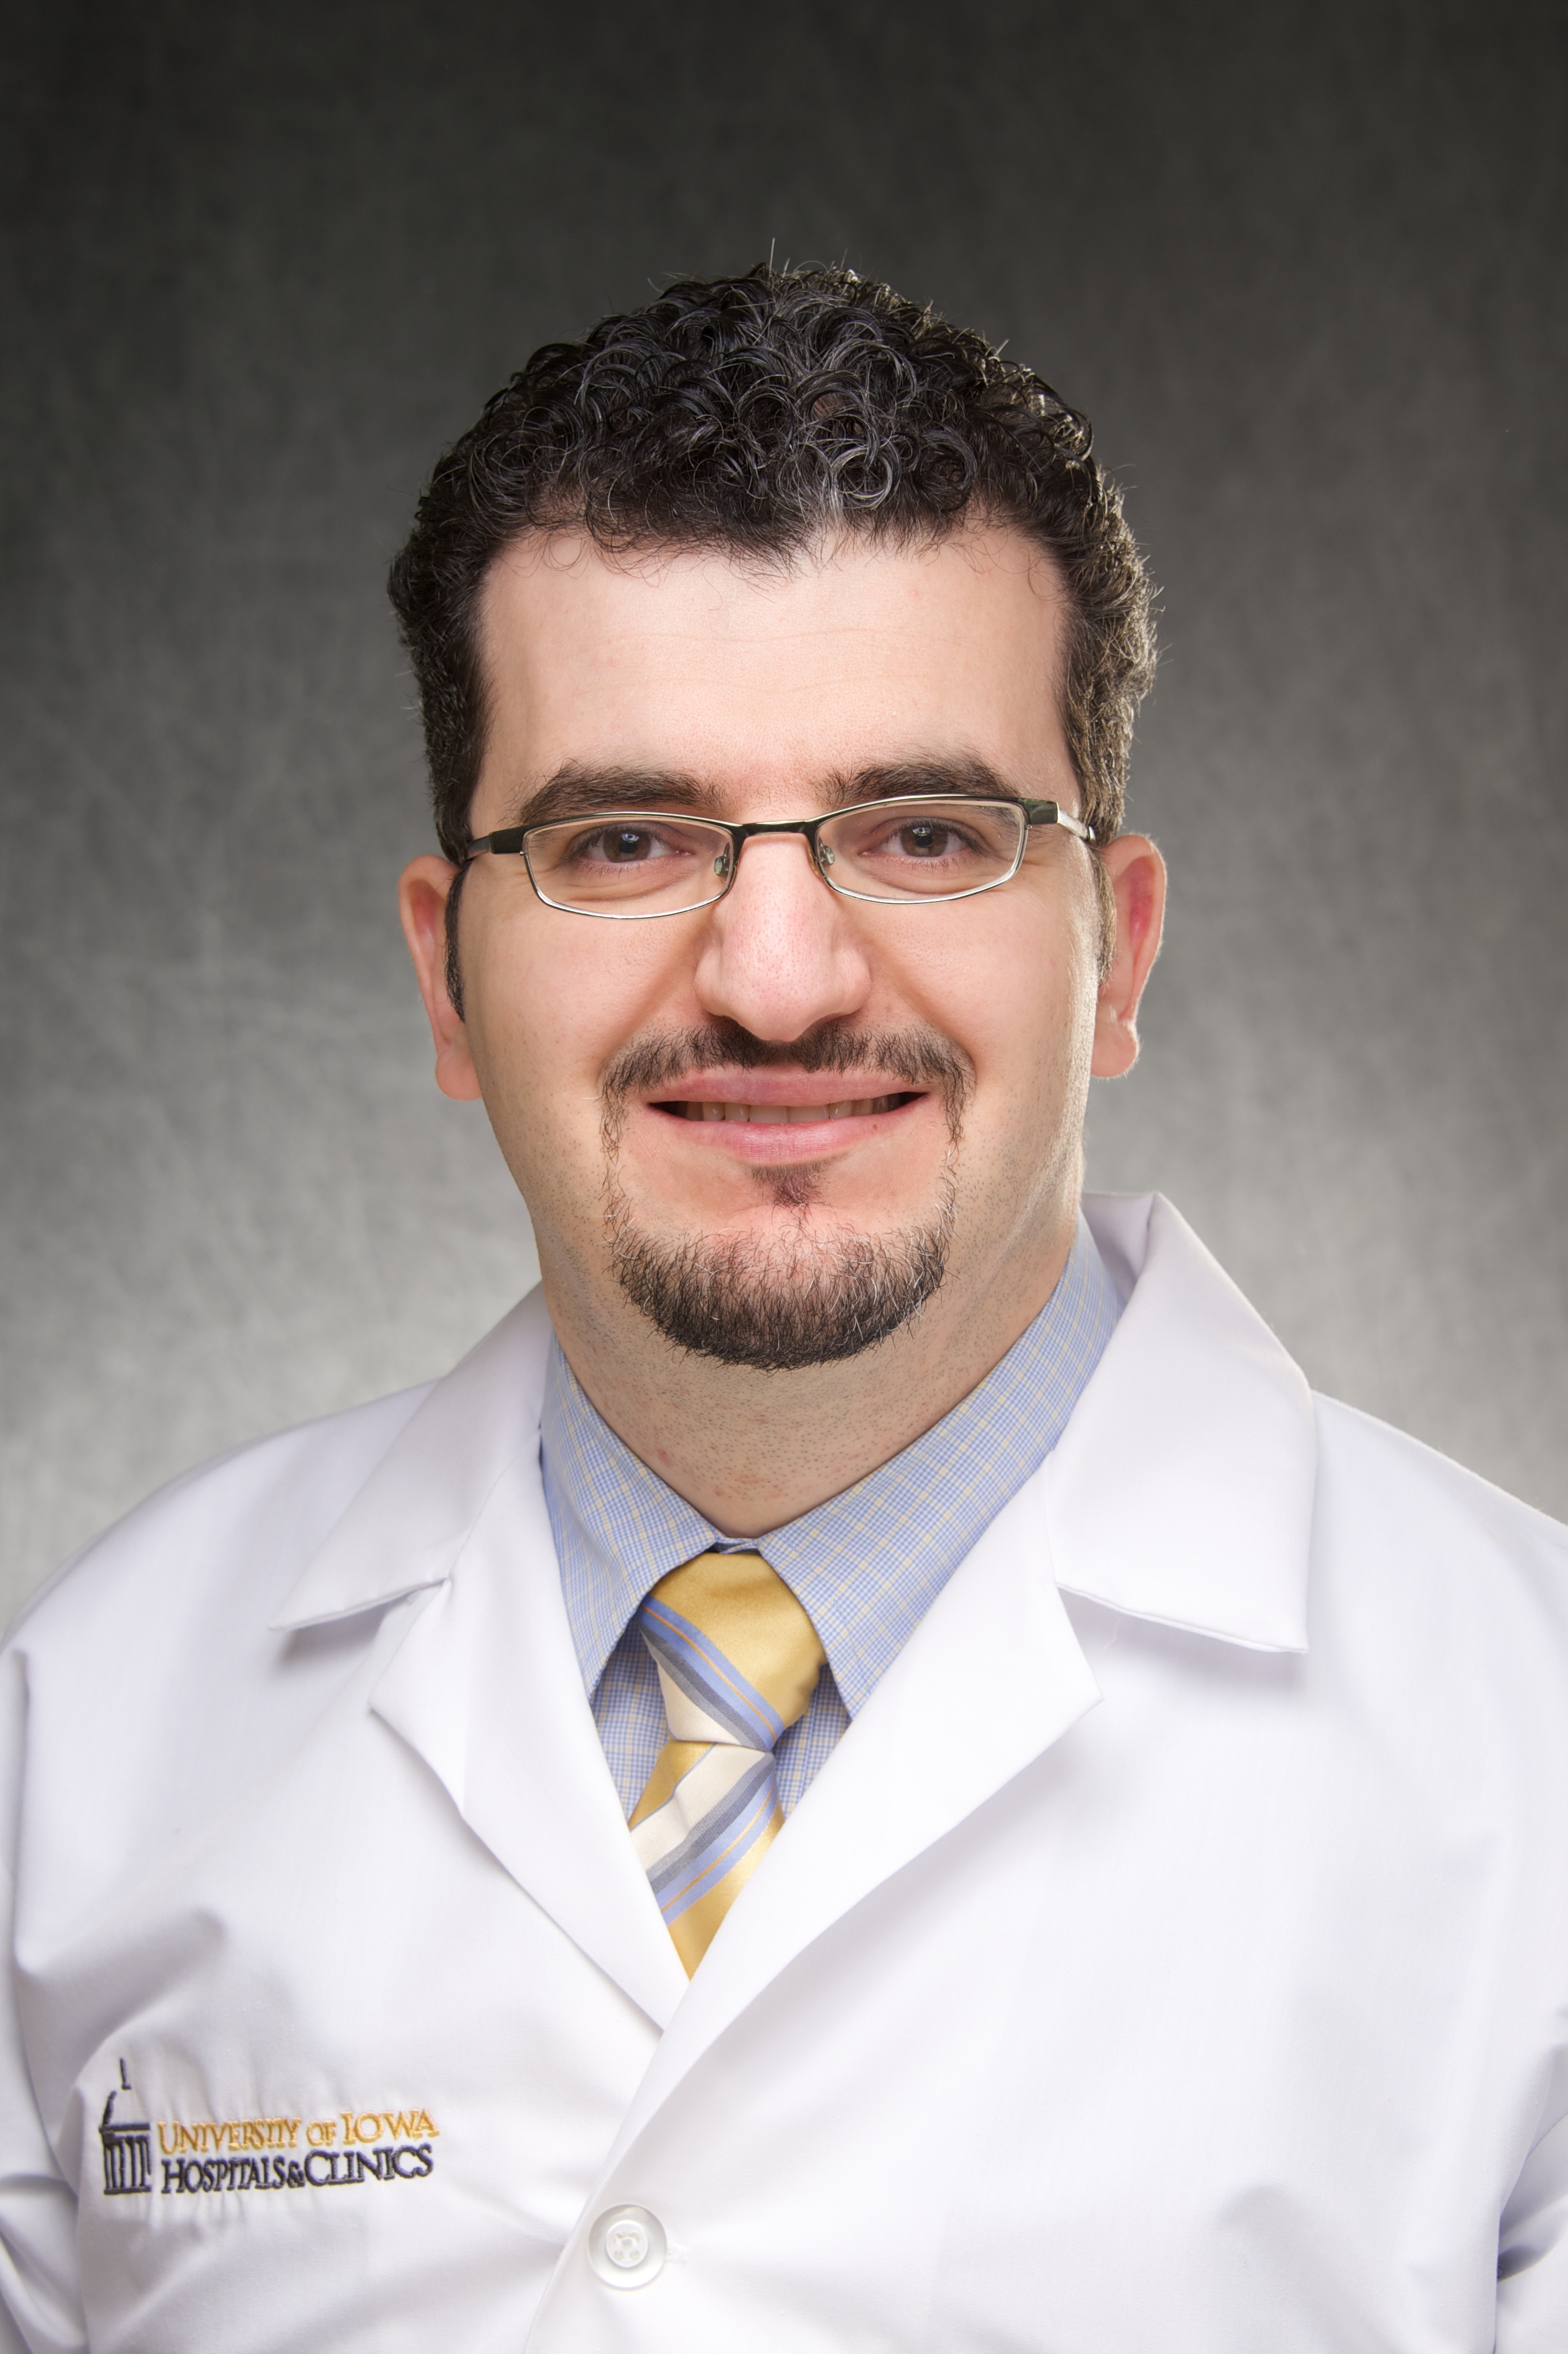 Yousef Zakharia, MD